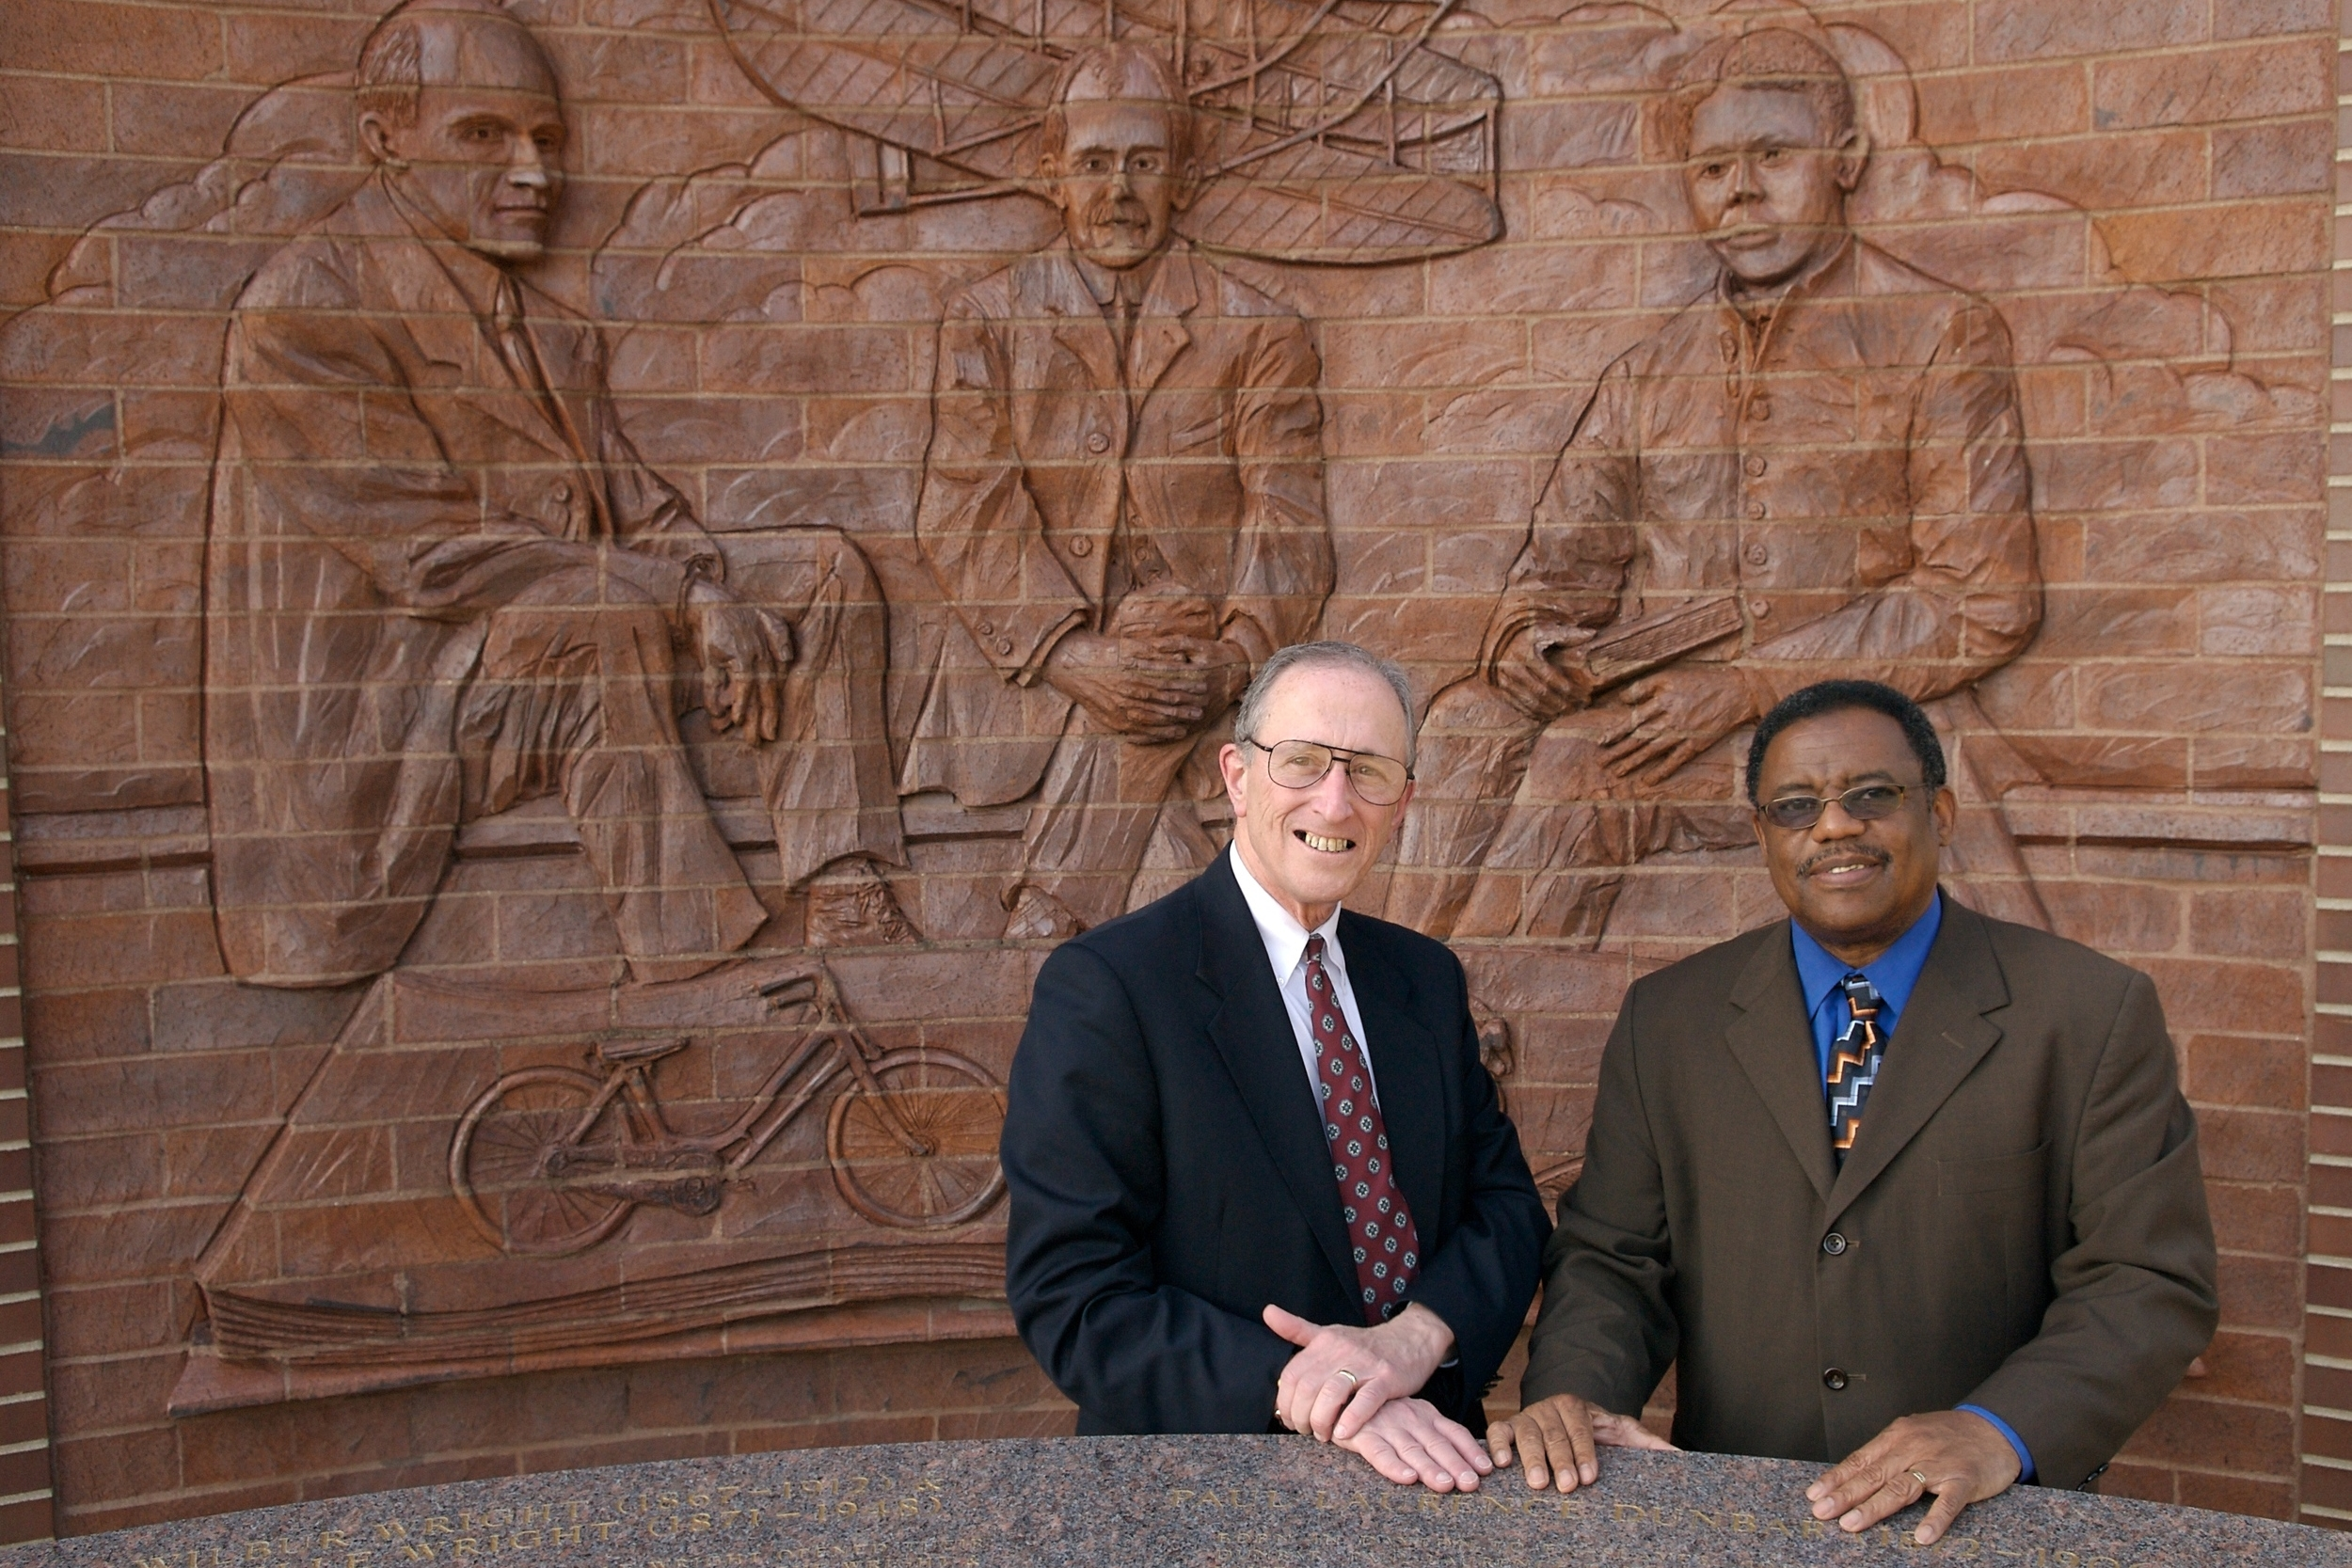 Judge Walter Rice & City Commissioner Dean Lovelace - Dayton, OH - photographed in the Wright-Dunbar neighborhood celebrating the early interracial friendship of the Wright Brothers and poet Paul Laurence Dunbar.